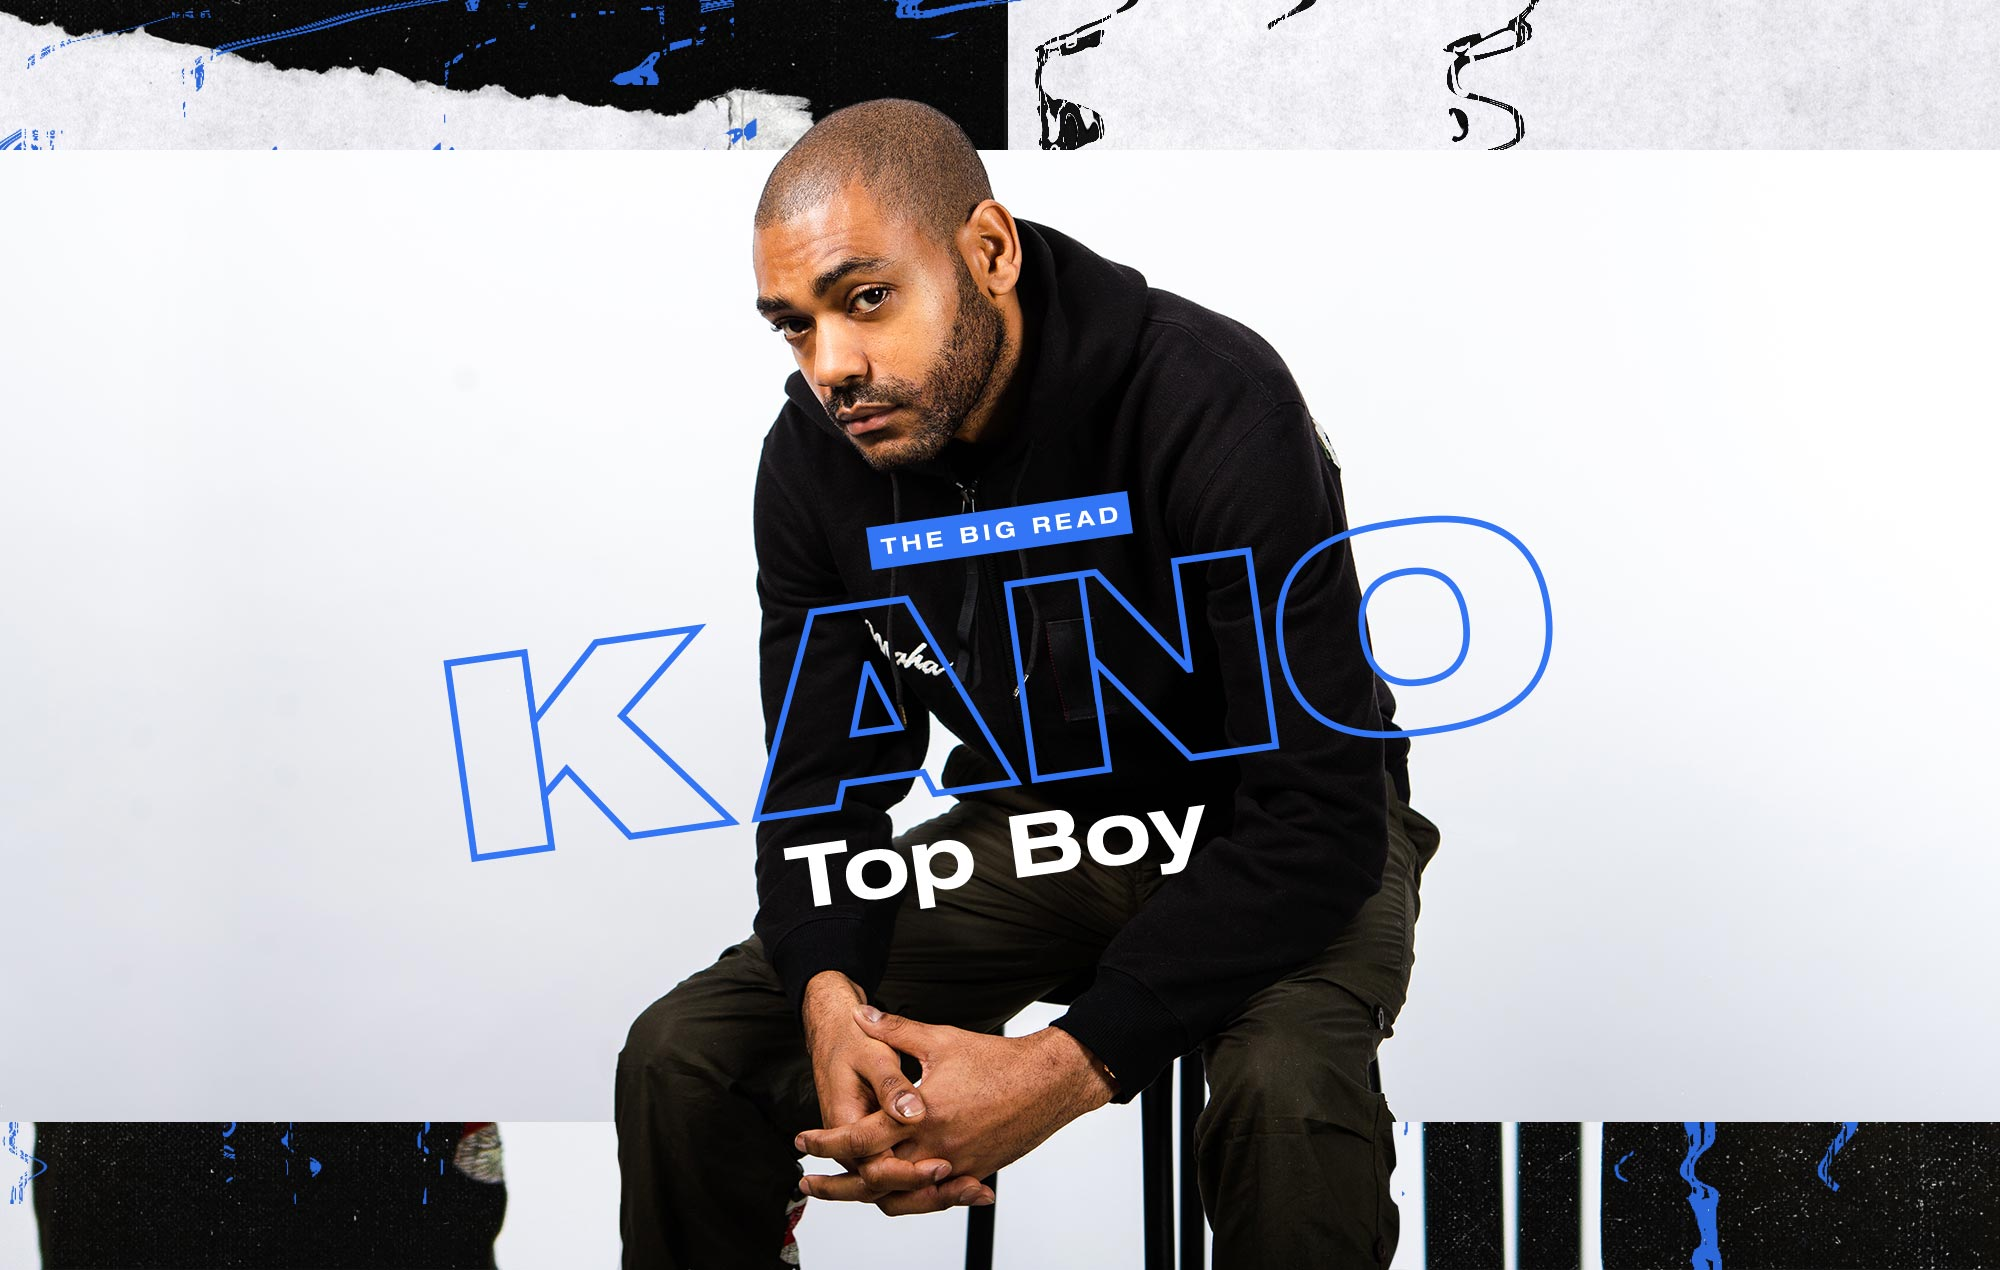 Kano Interview